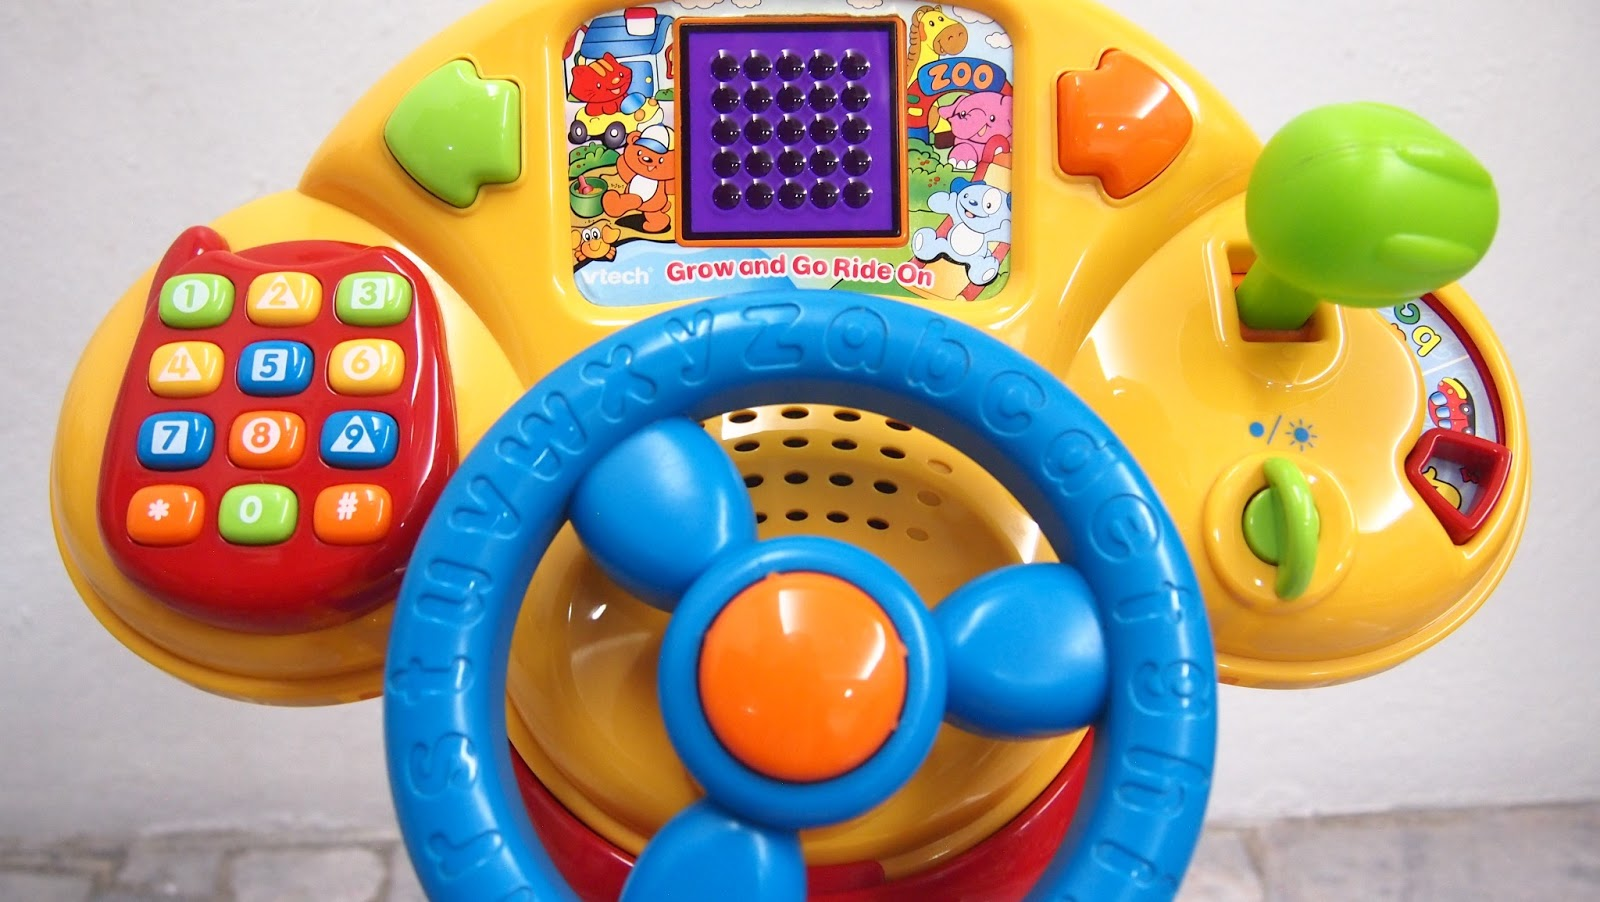 vtech grow and go ride on instructions